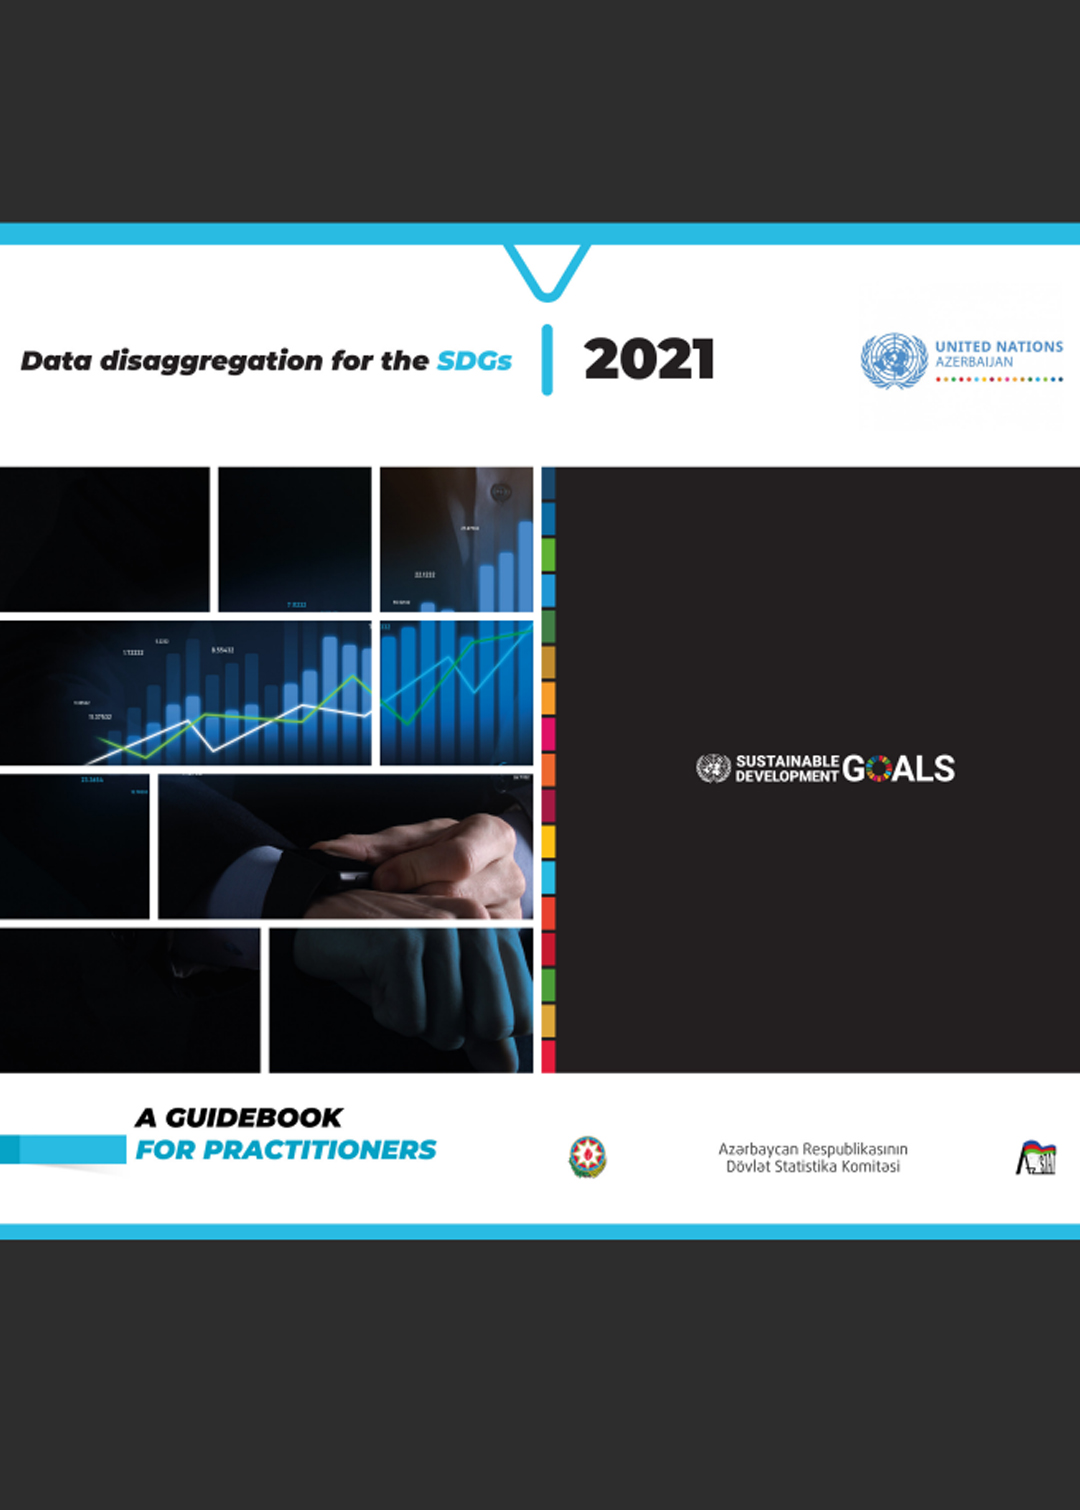 Data disaggregation for the SDGs